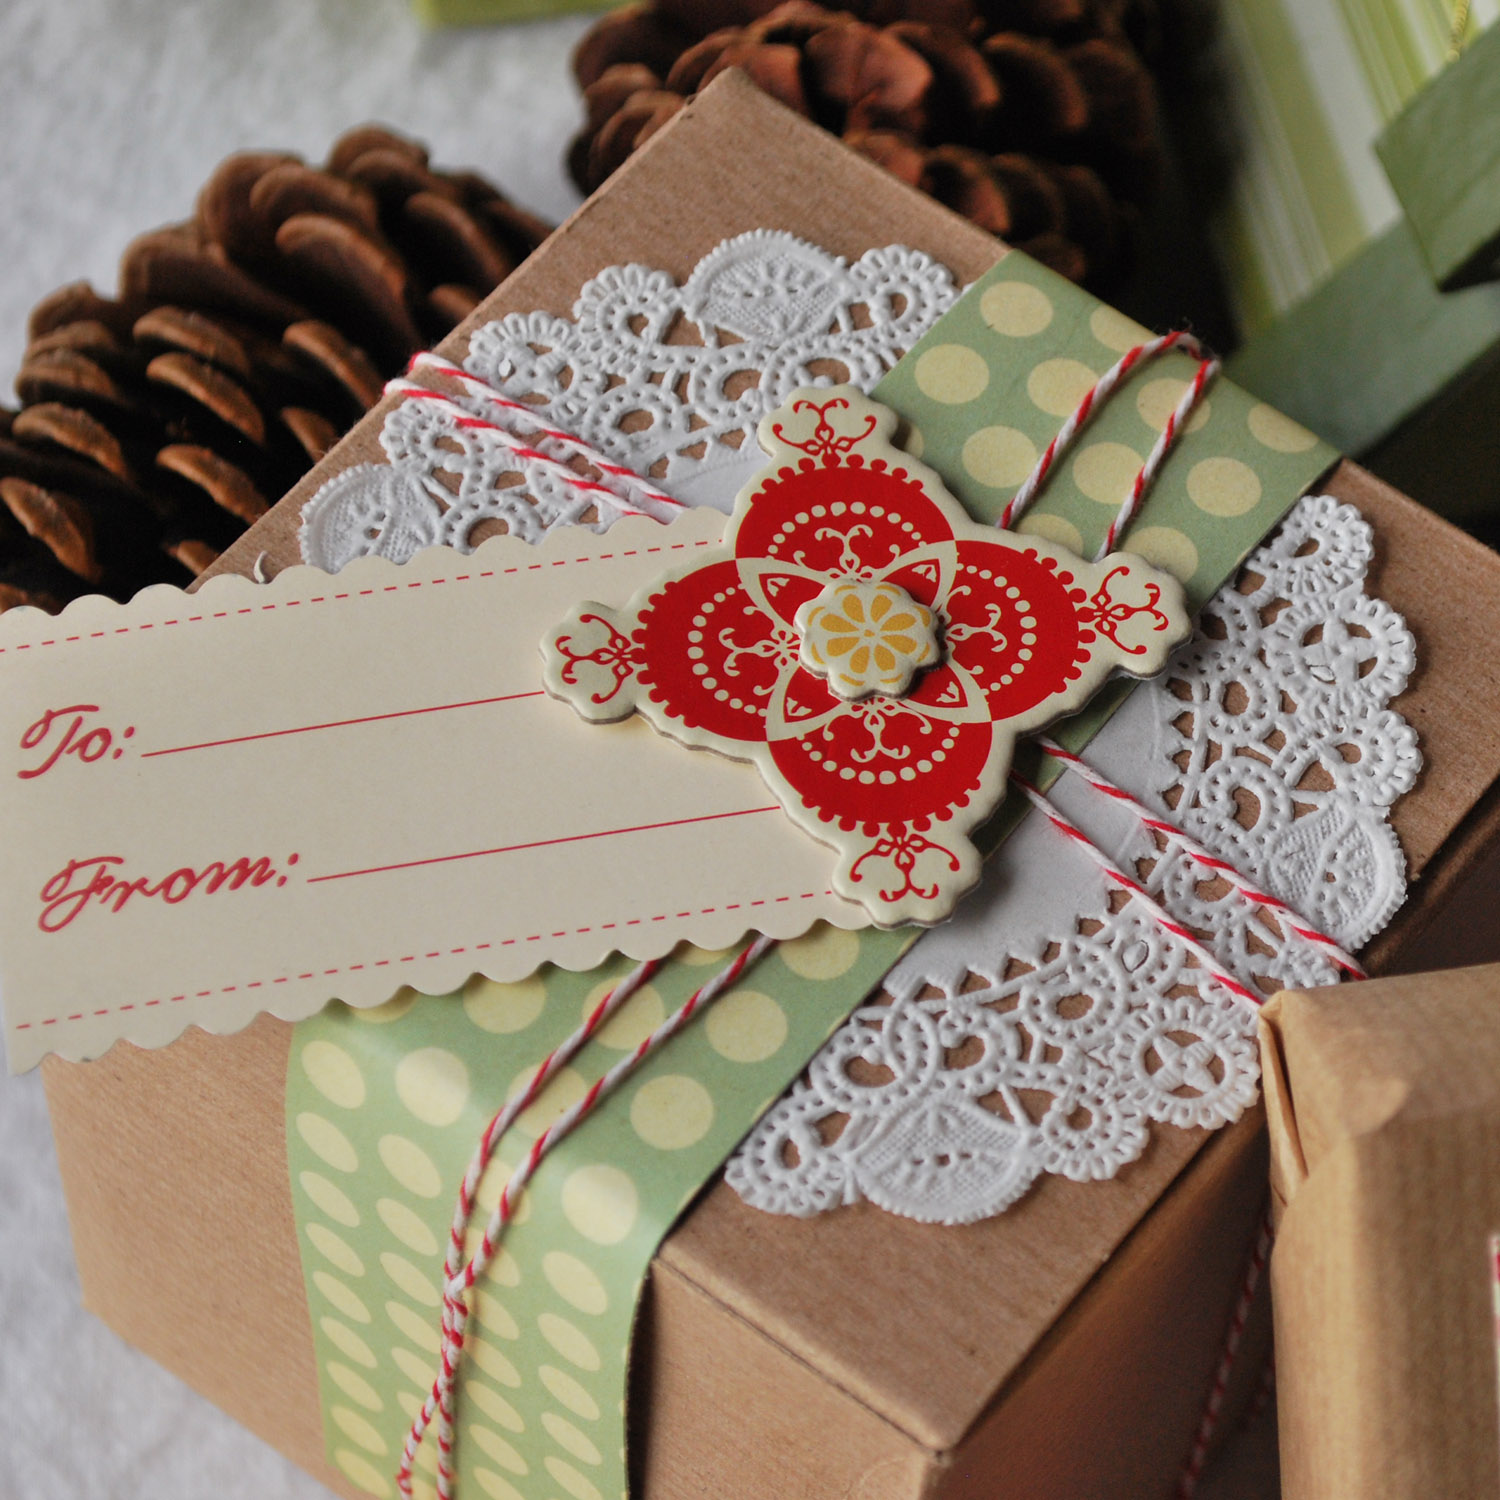 13 Recycled Gift Wrap Ideas